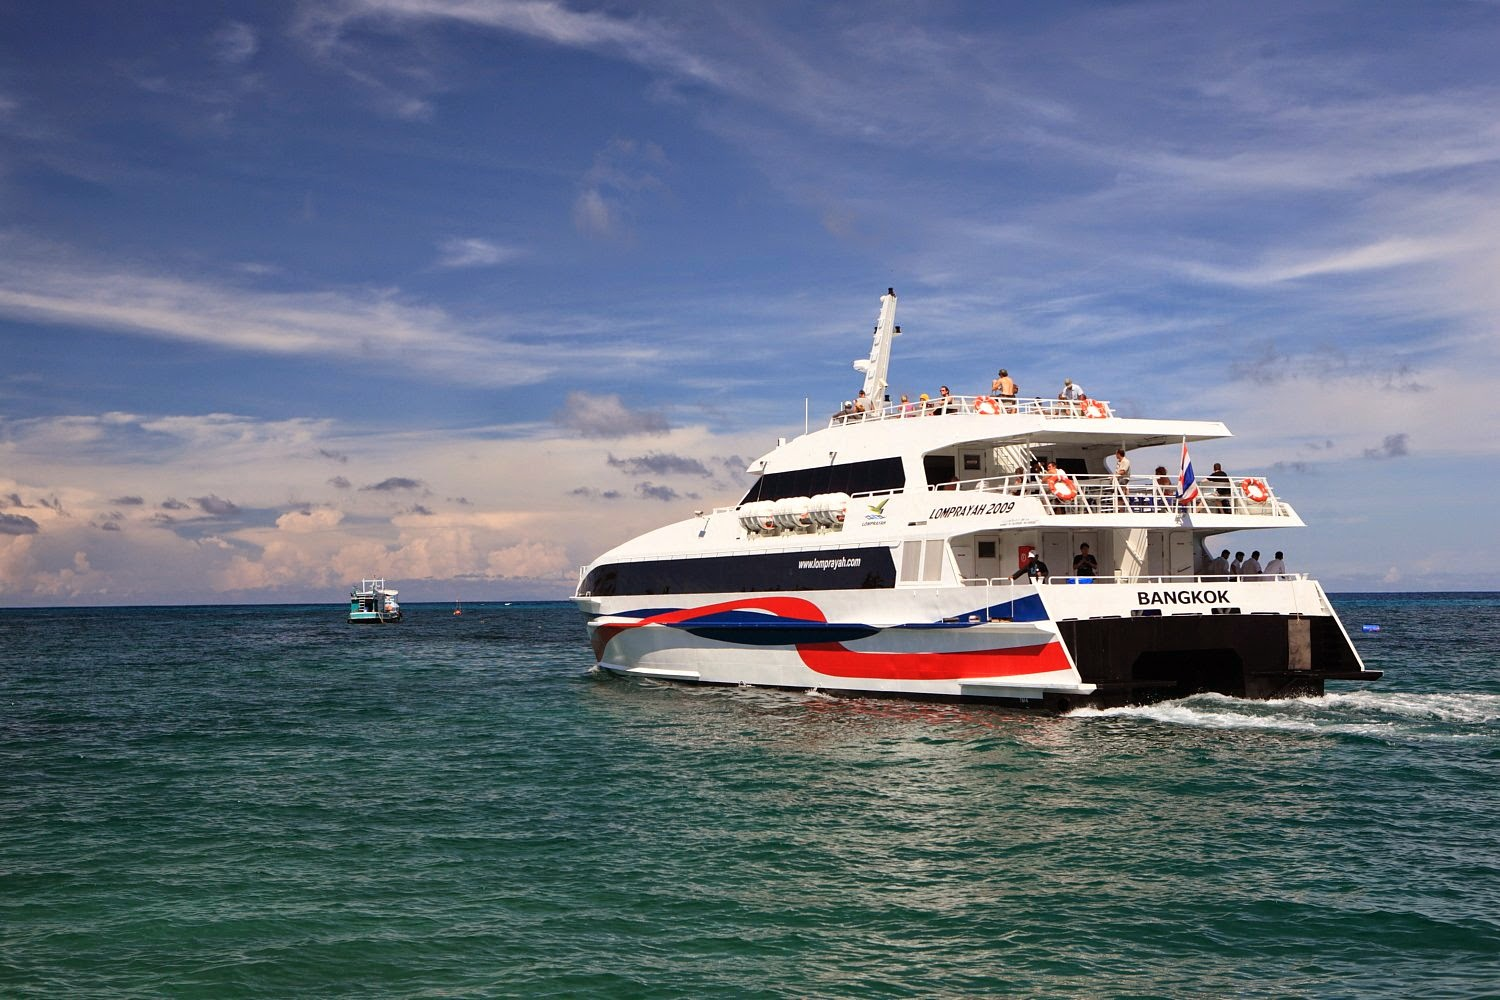 From Koh Tao to Surat Thani Airport by Lomprayah High Speed Catamaran and Shared Minivan